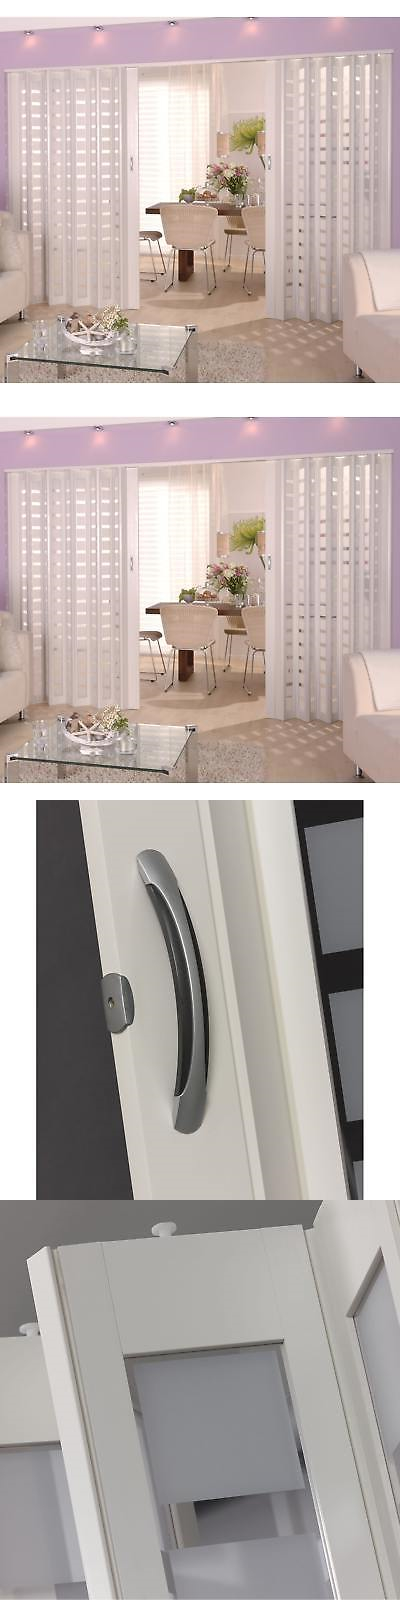 Doors 85892: Homestyle Metro White With Frosted Squares Insert ...